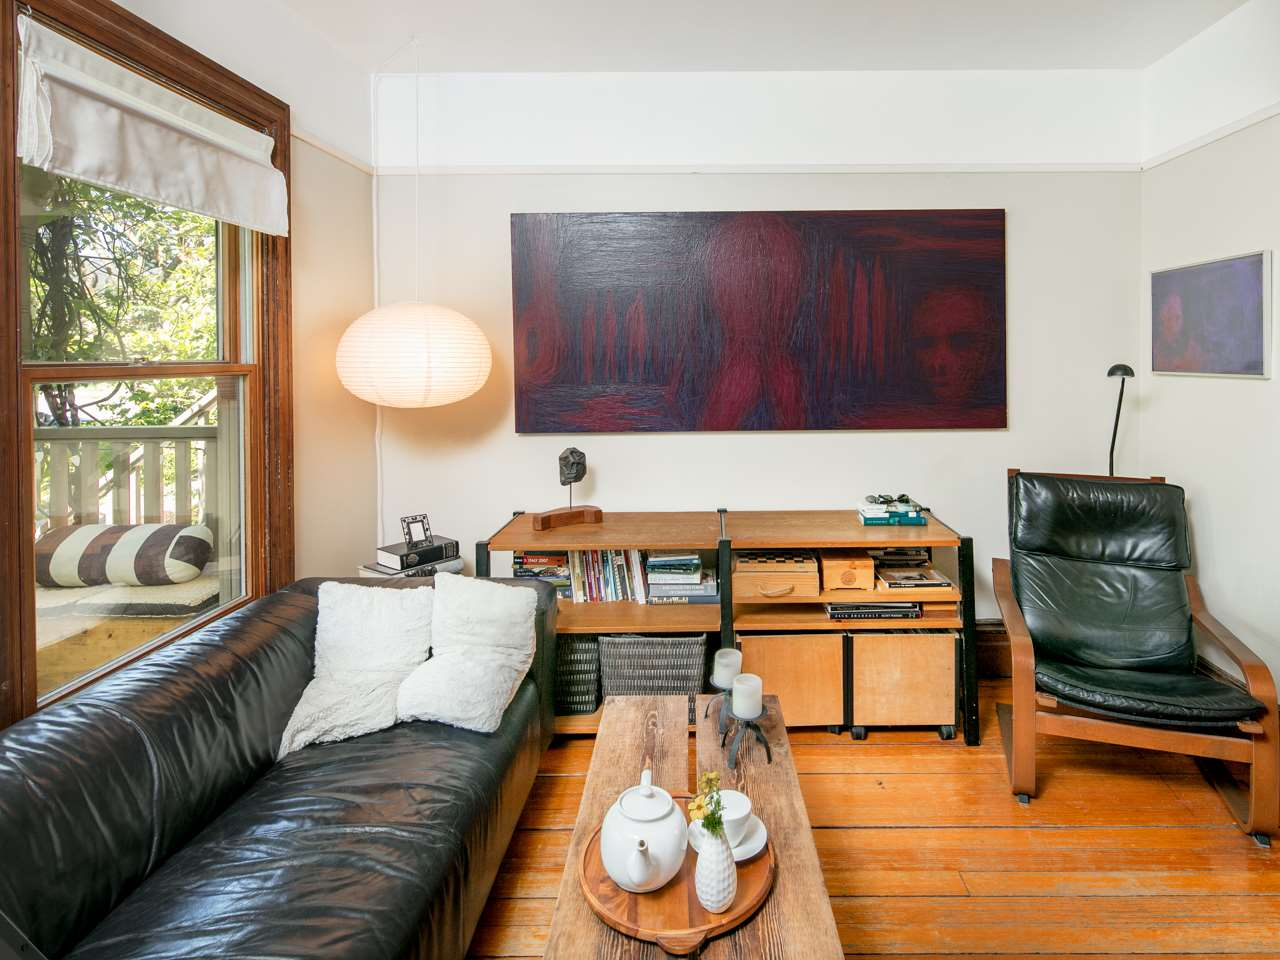 Photo 2: 508 HAWKS Avenue in Vancouver: Mount Pleasant VE Townhouse for sale (Vancouver East)  : MLS® # R2183954